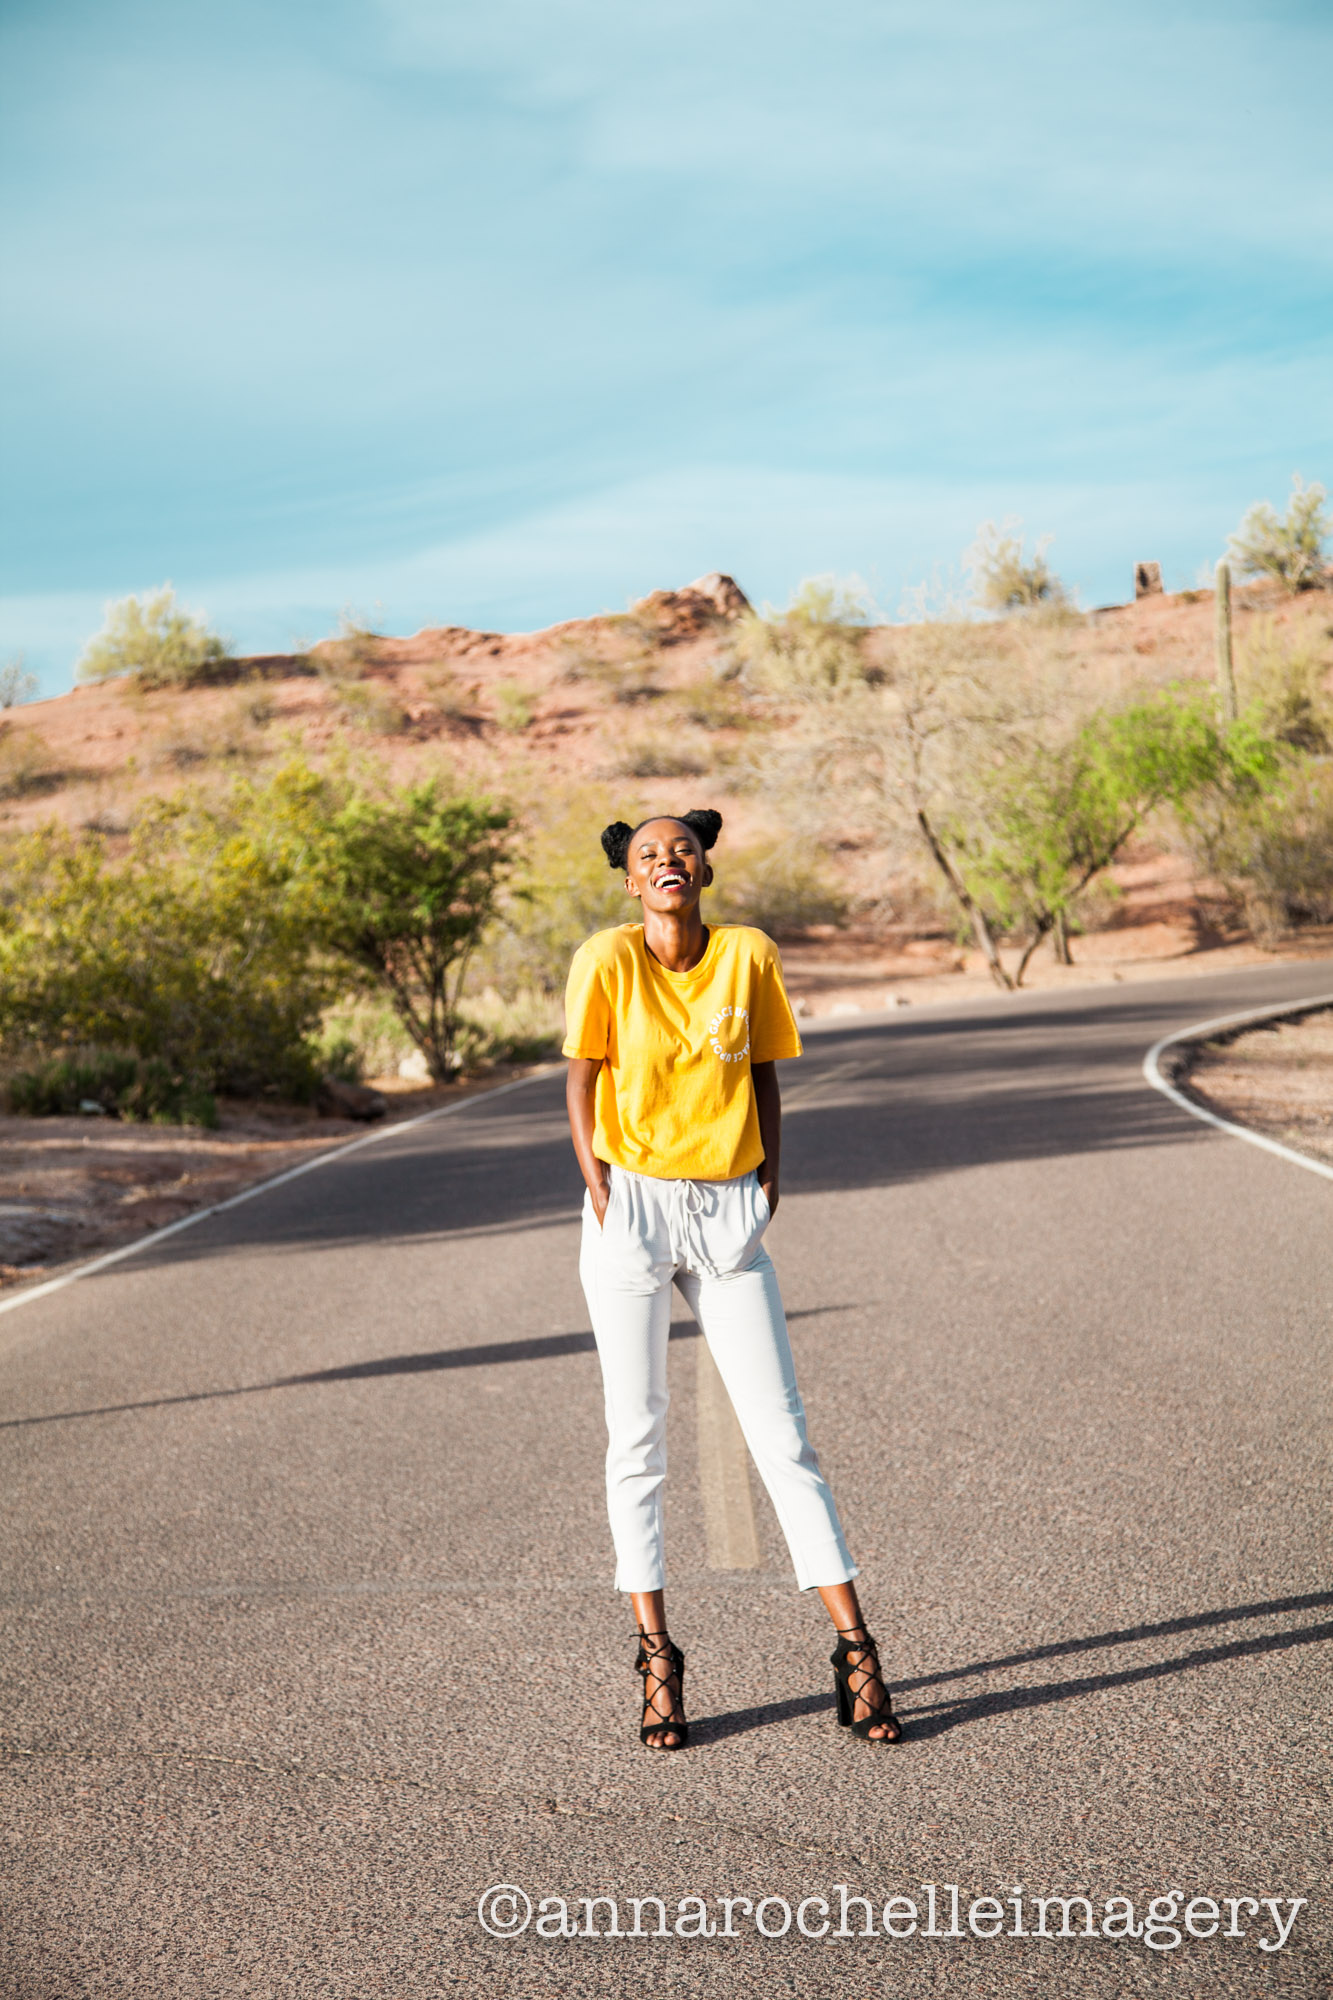 Blog_walkinlove_jay-anna rochelle imagery-tempe phoenix fashion-papago park (6 of 7).jpg